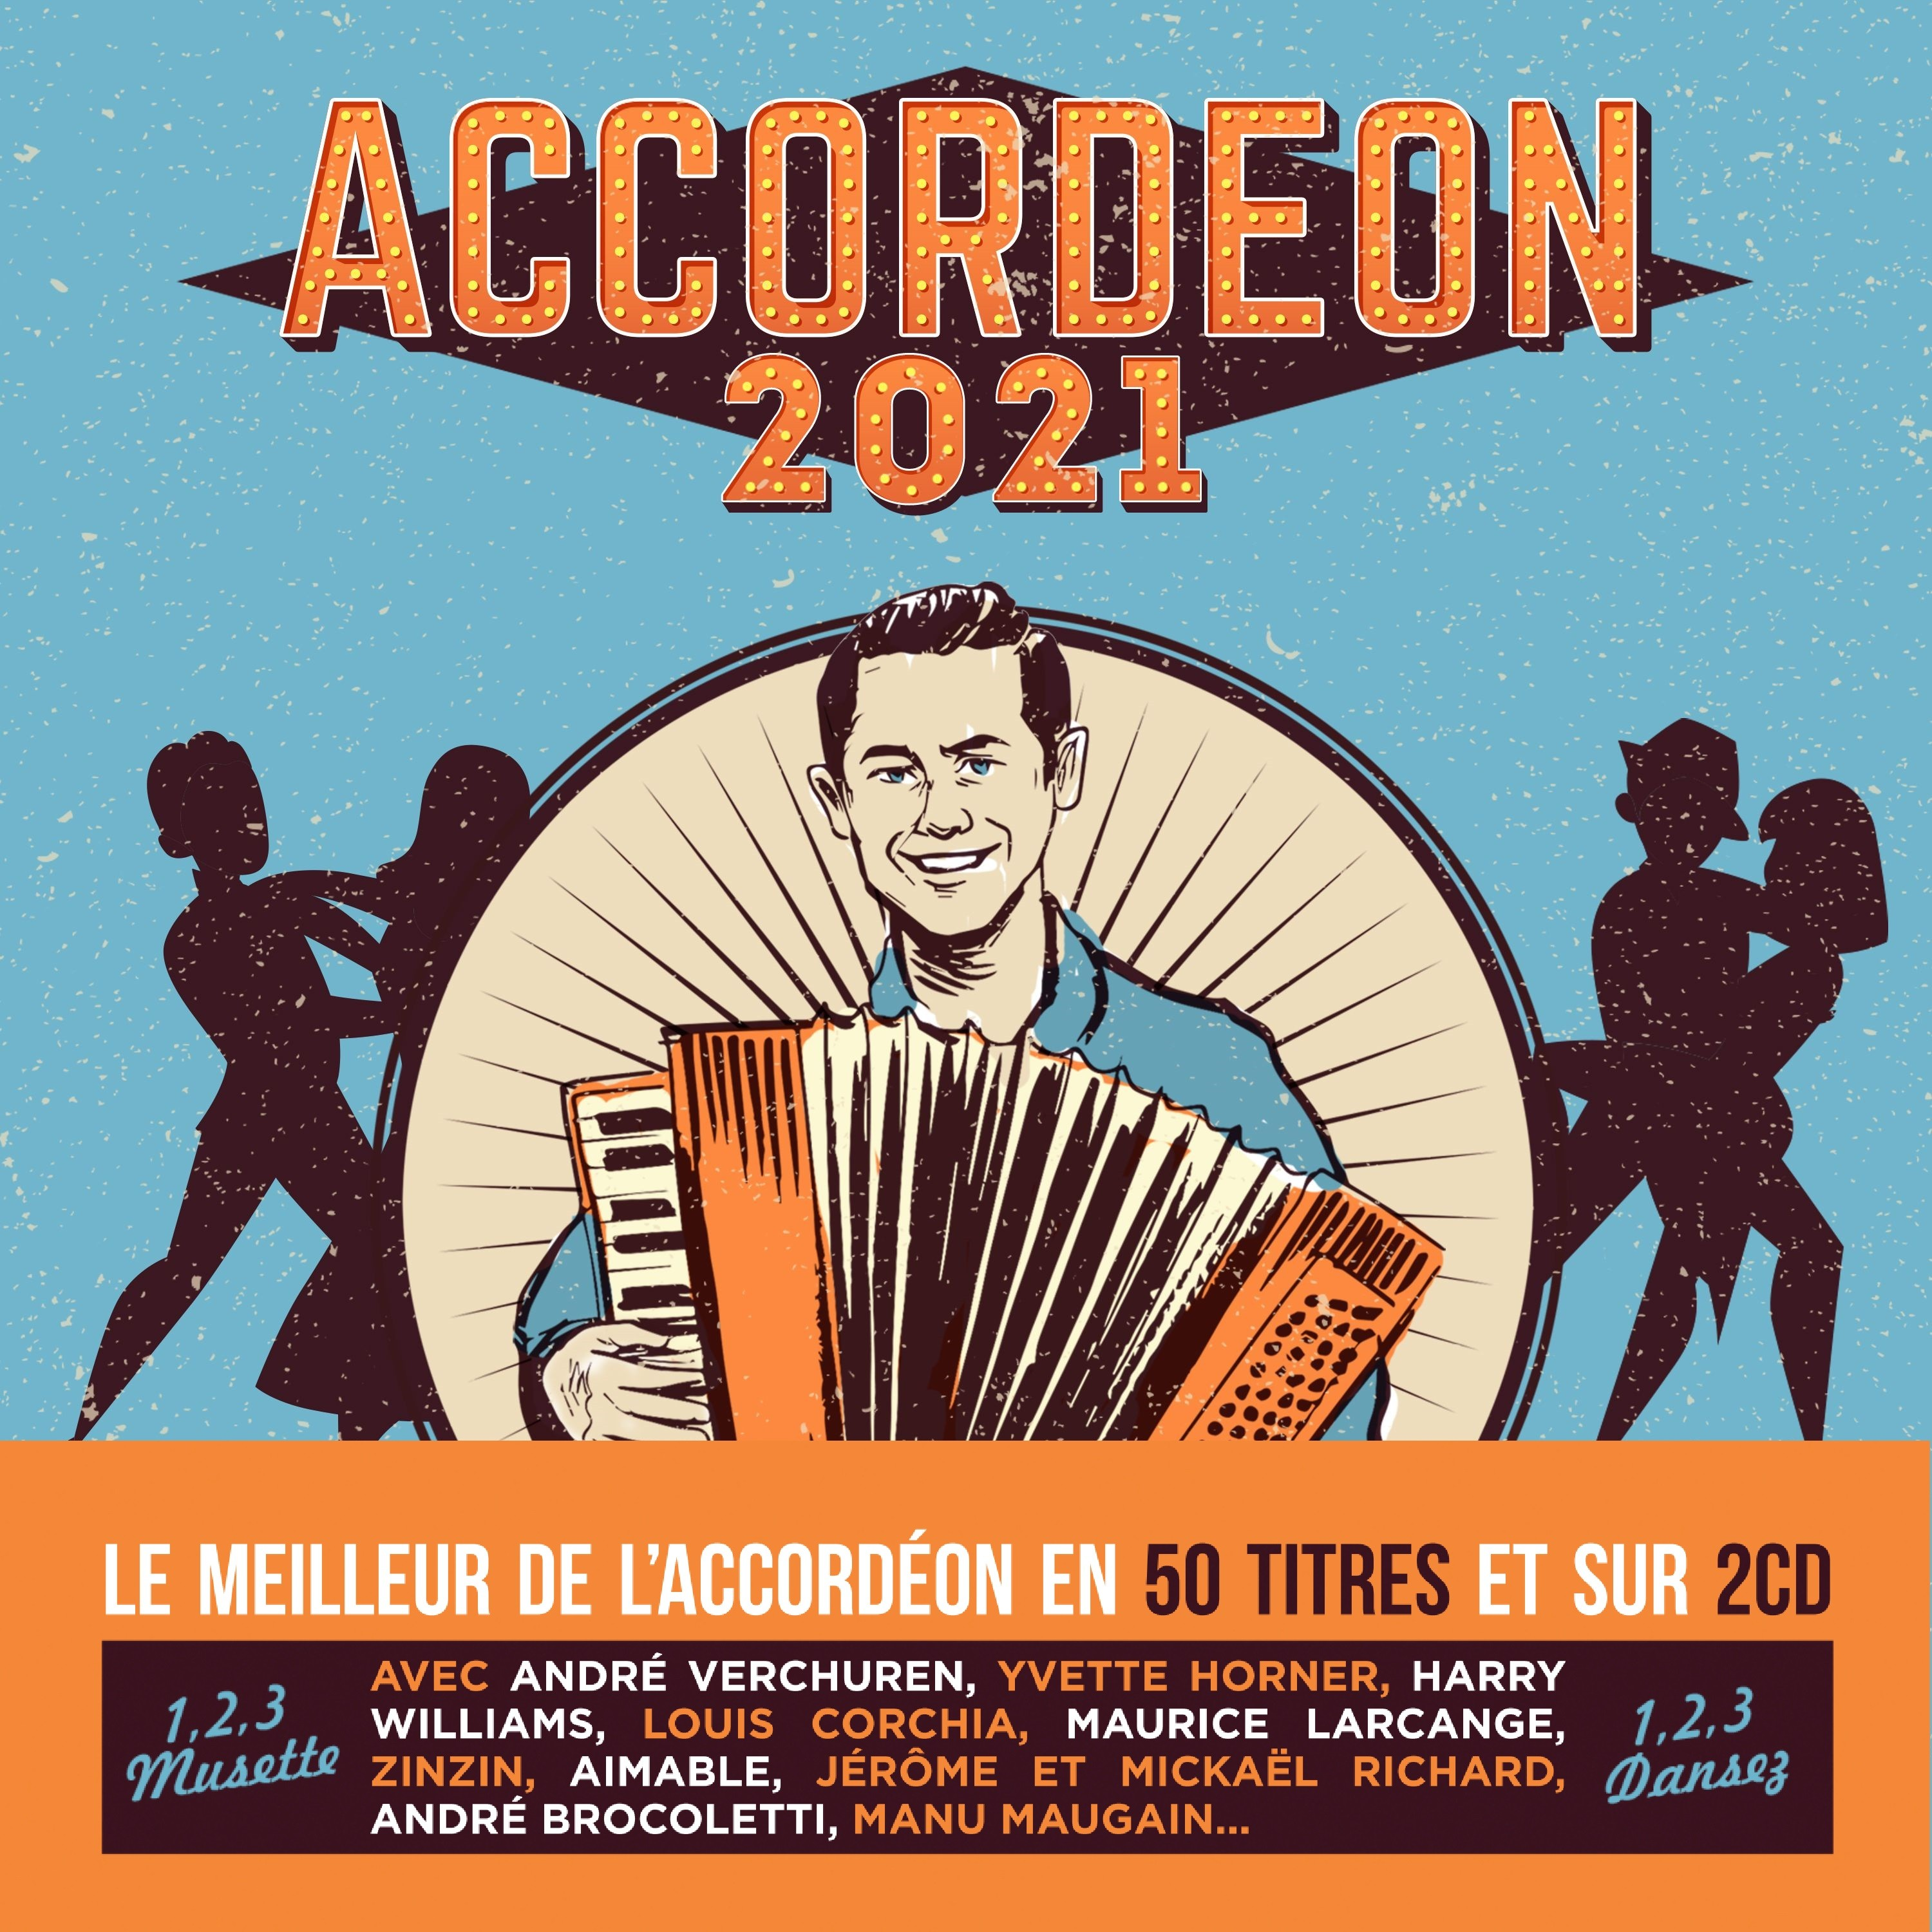 Accordeon 2021